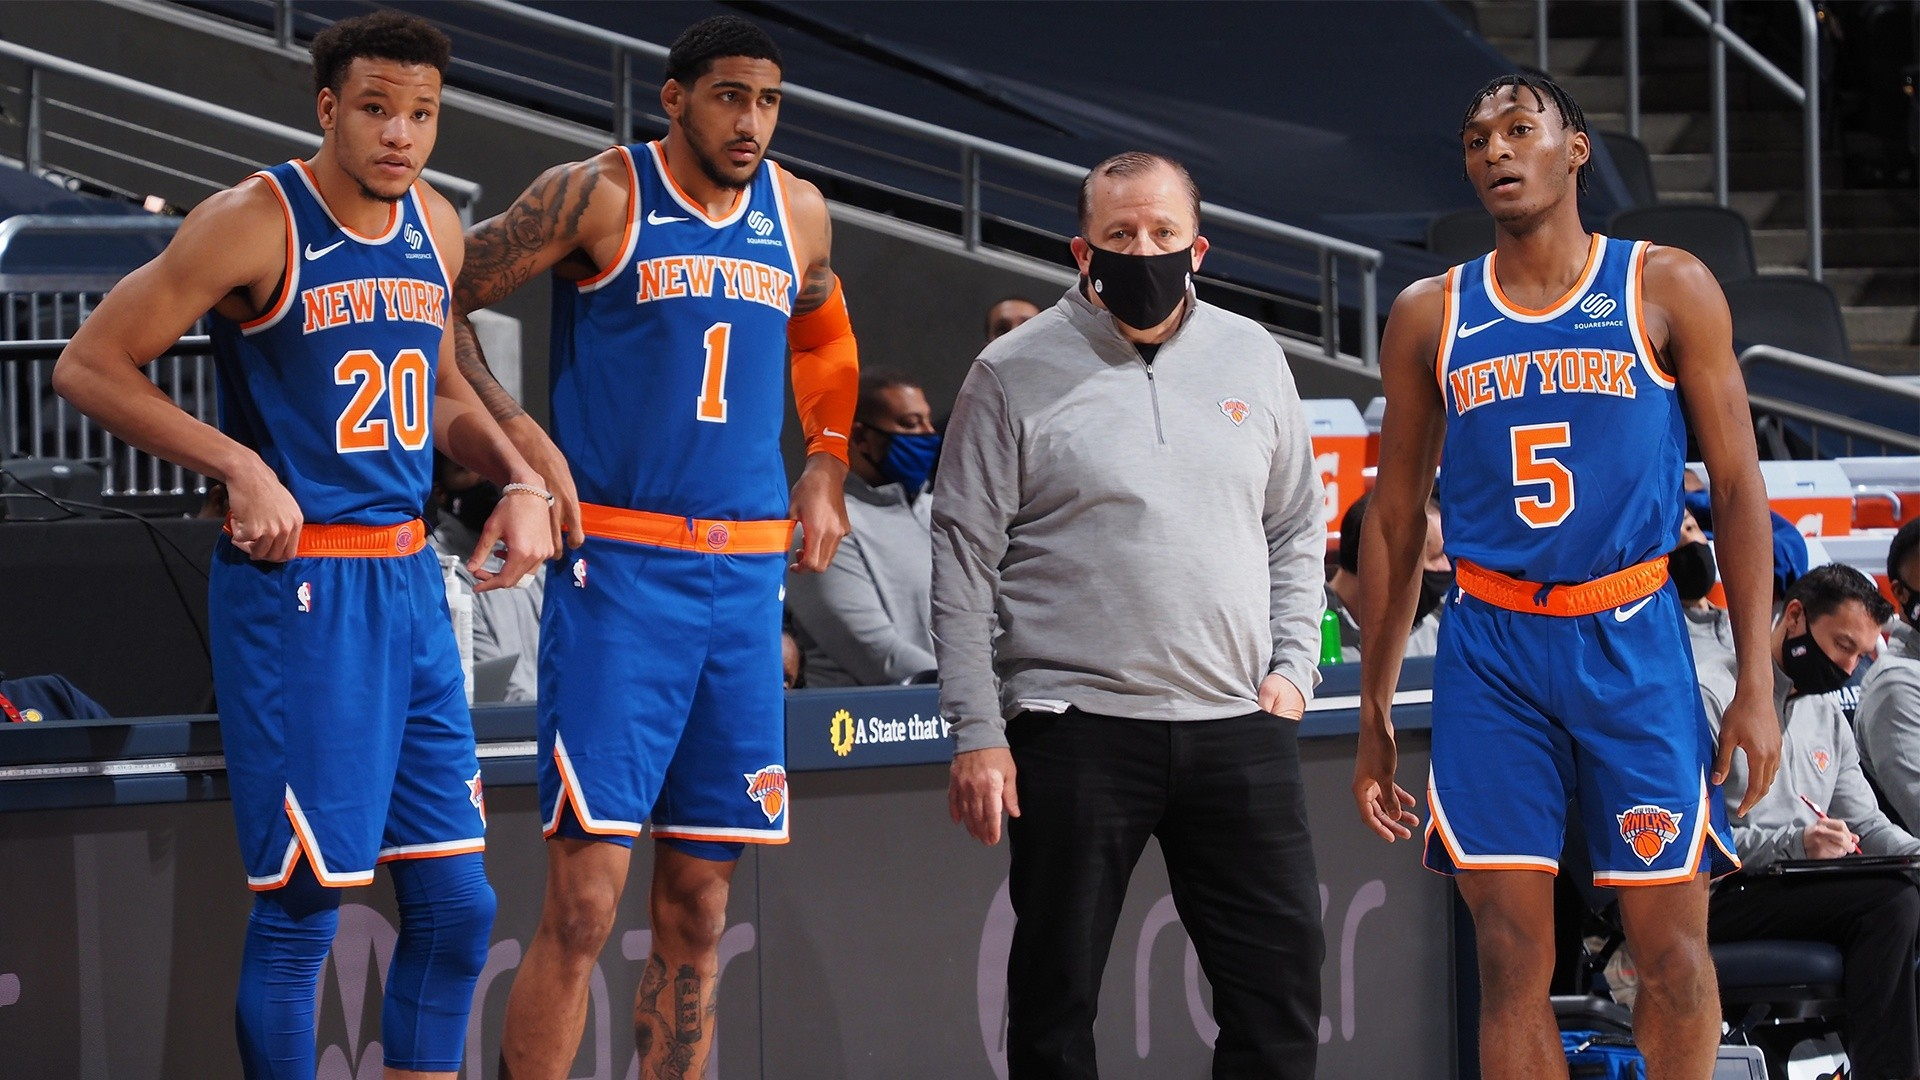 New York Knicks' hot start offers reason for optimism about future | NBC  Sports